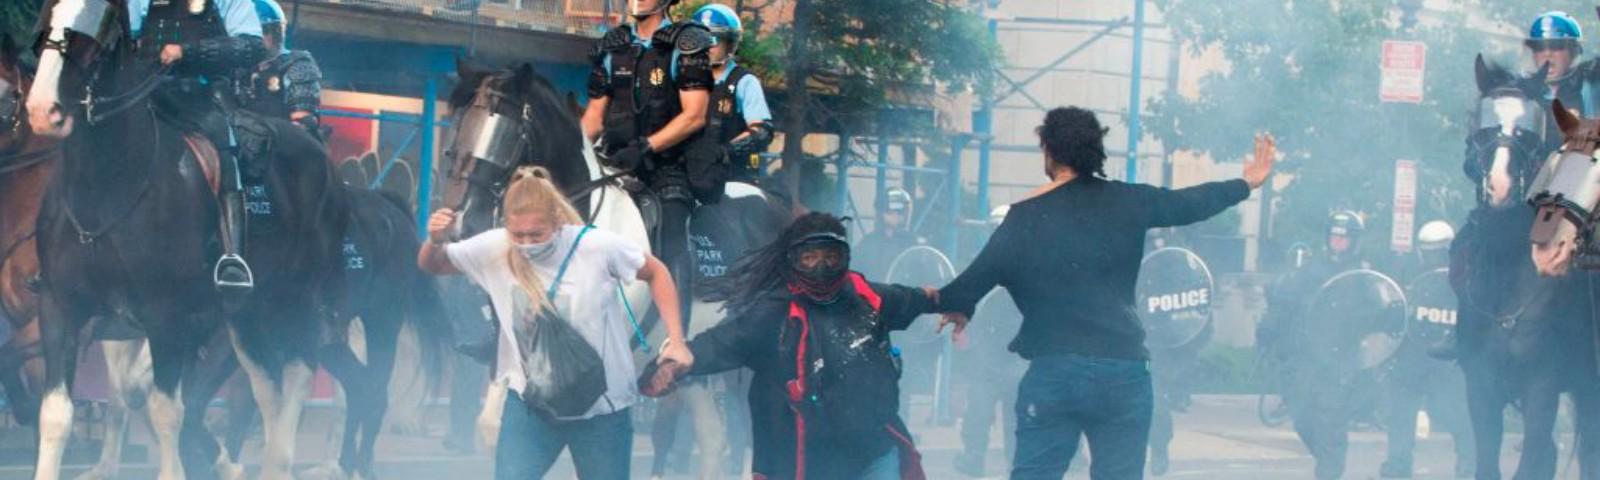 A photo of police tear gassing protestors as the police ride on horses past them.